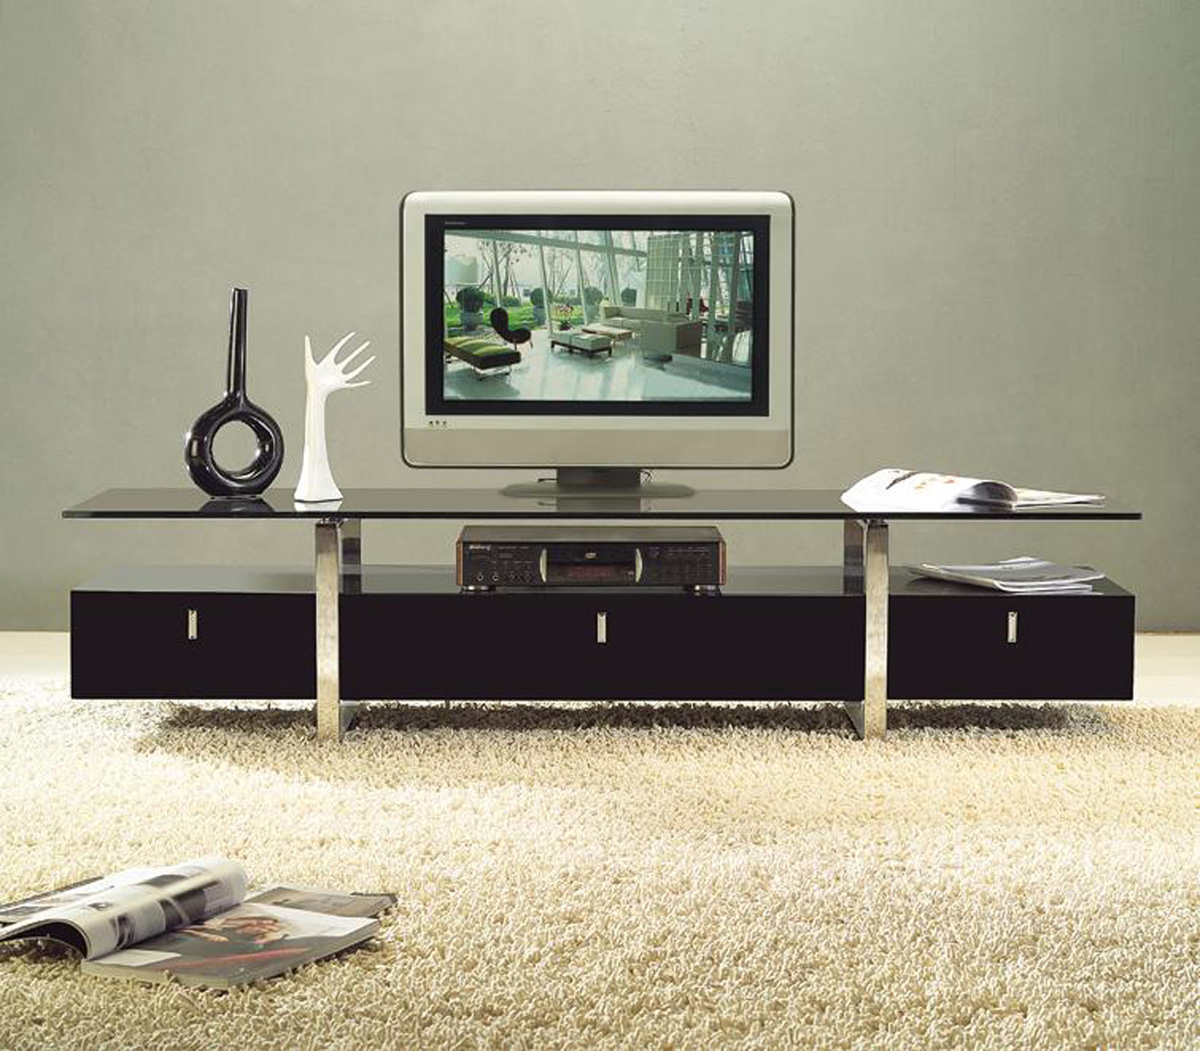 Plans For Building A Flat Screen Tv Stand Furnitureplans